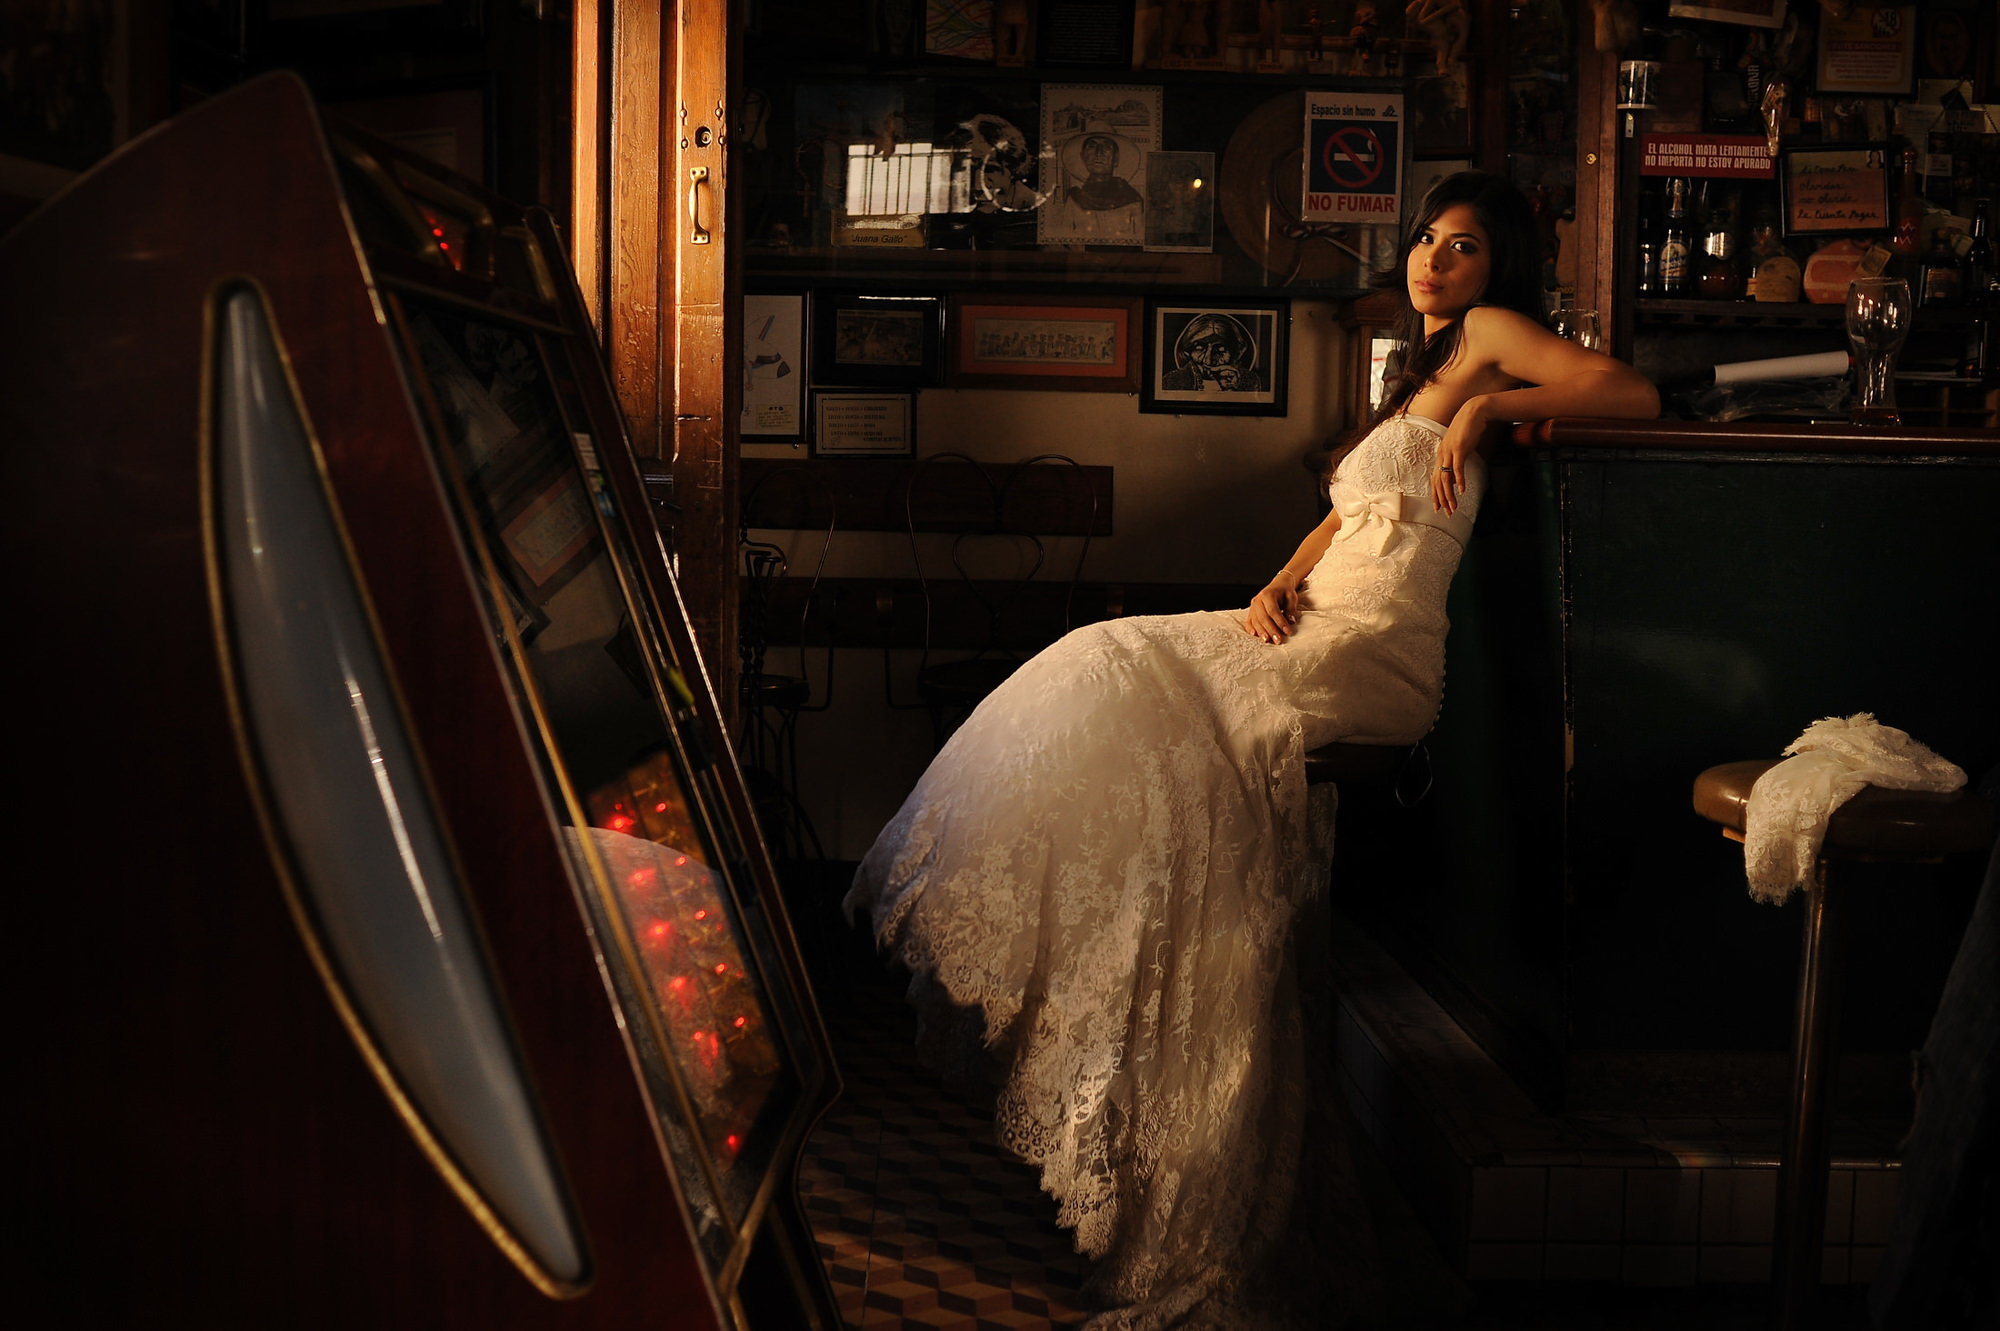 Bridal portrait in bar with jukebox lace gown - photo by Daniel Aguilar